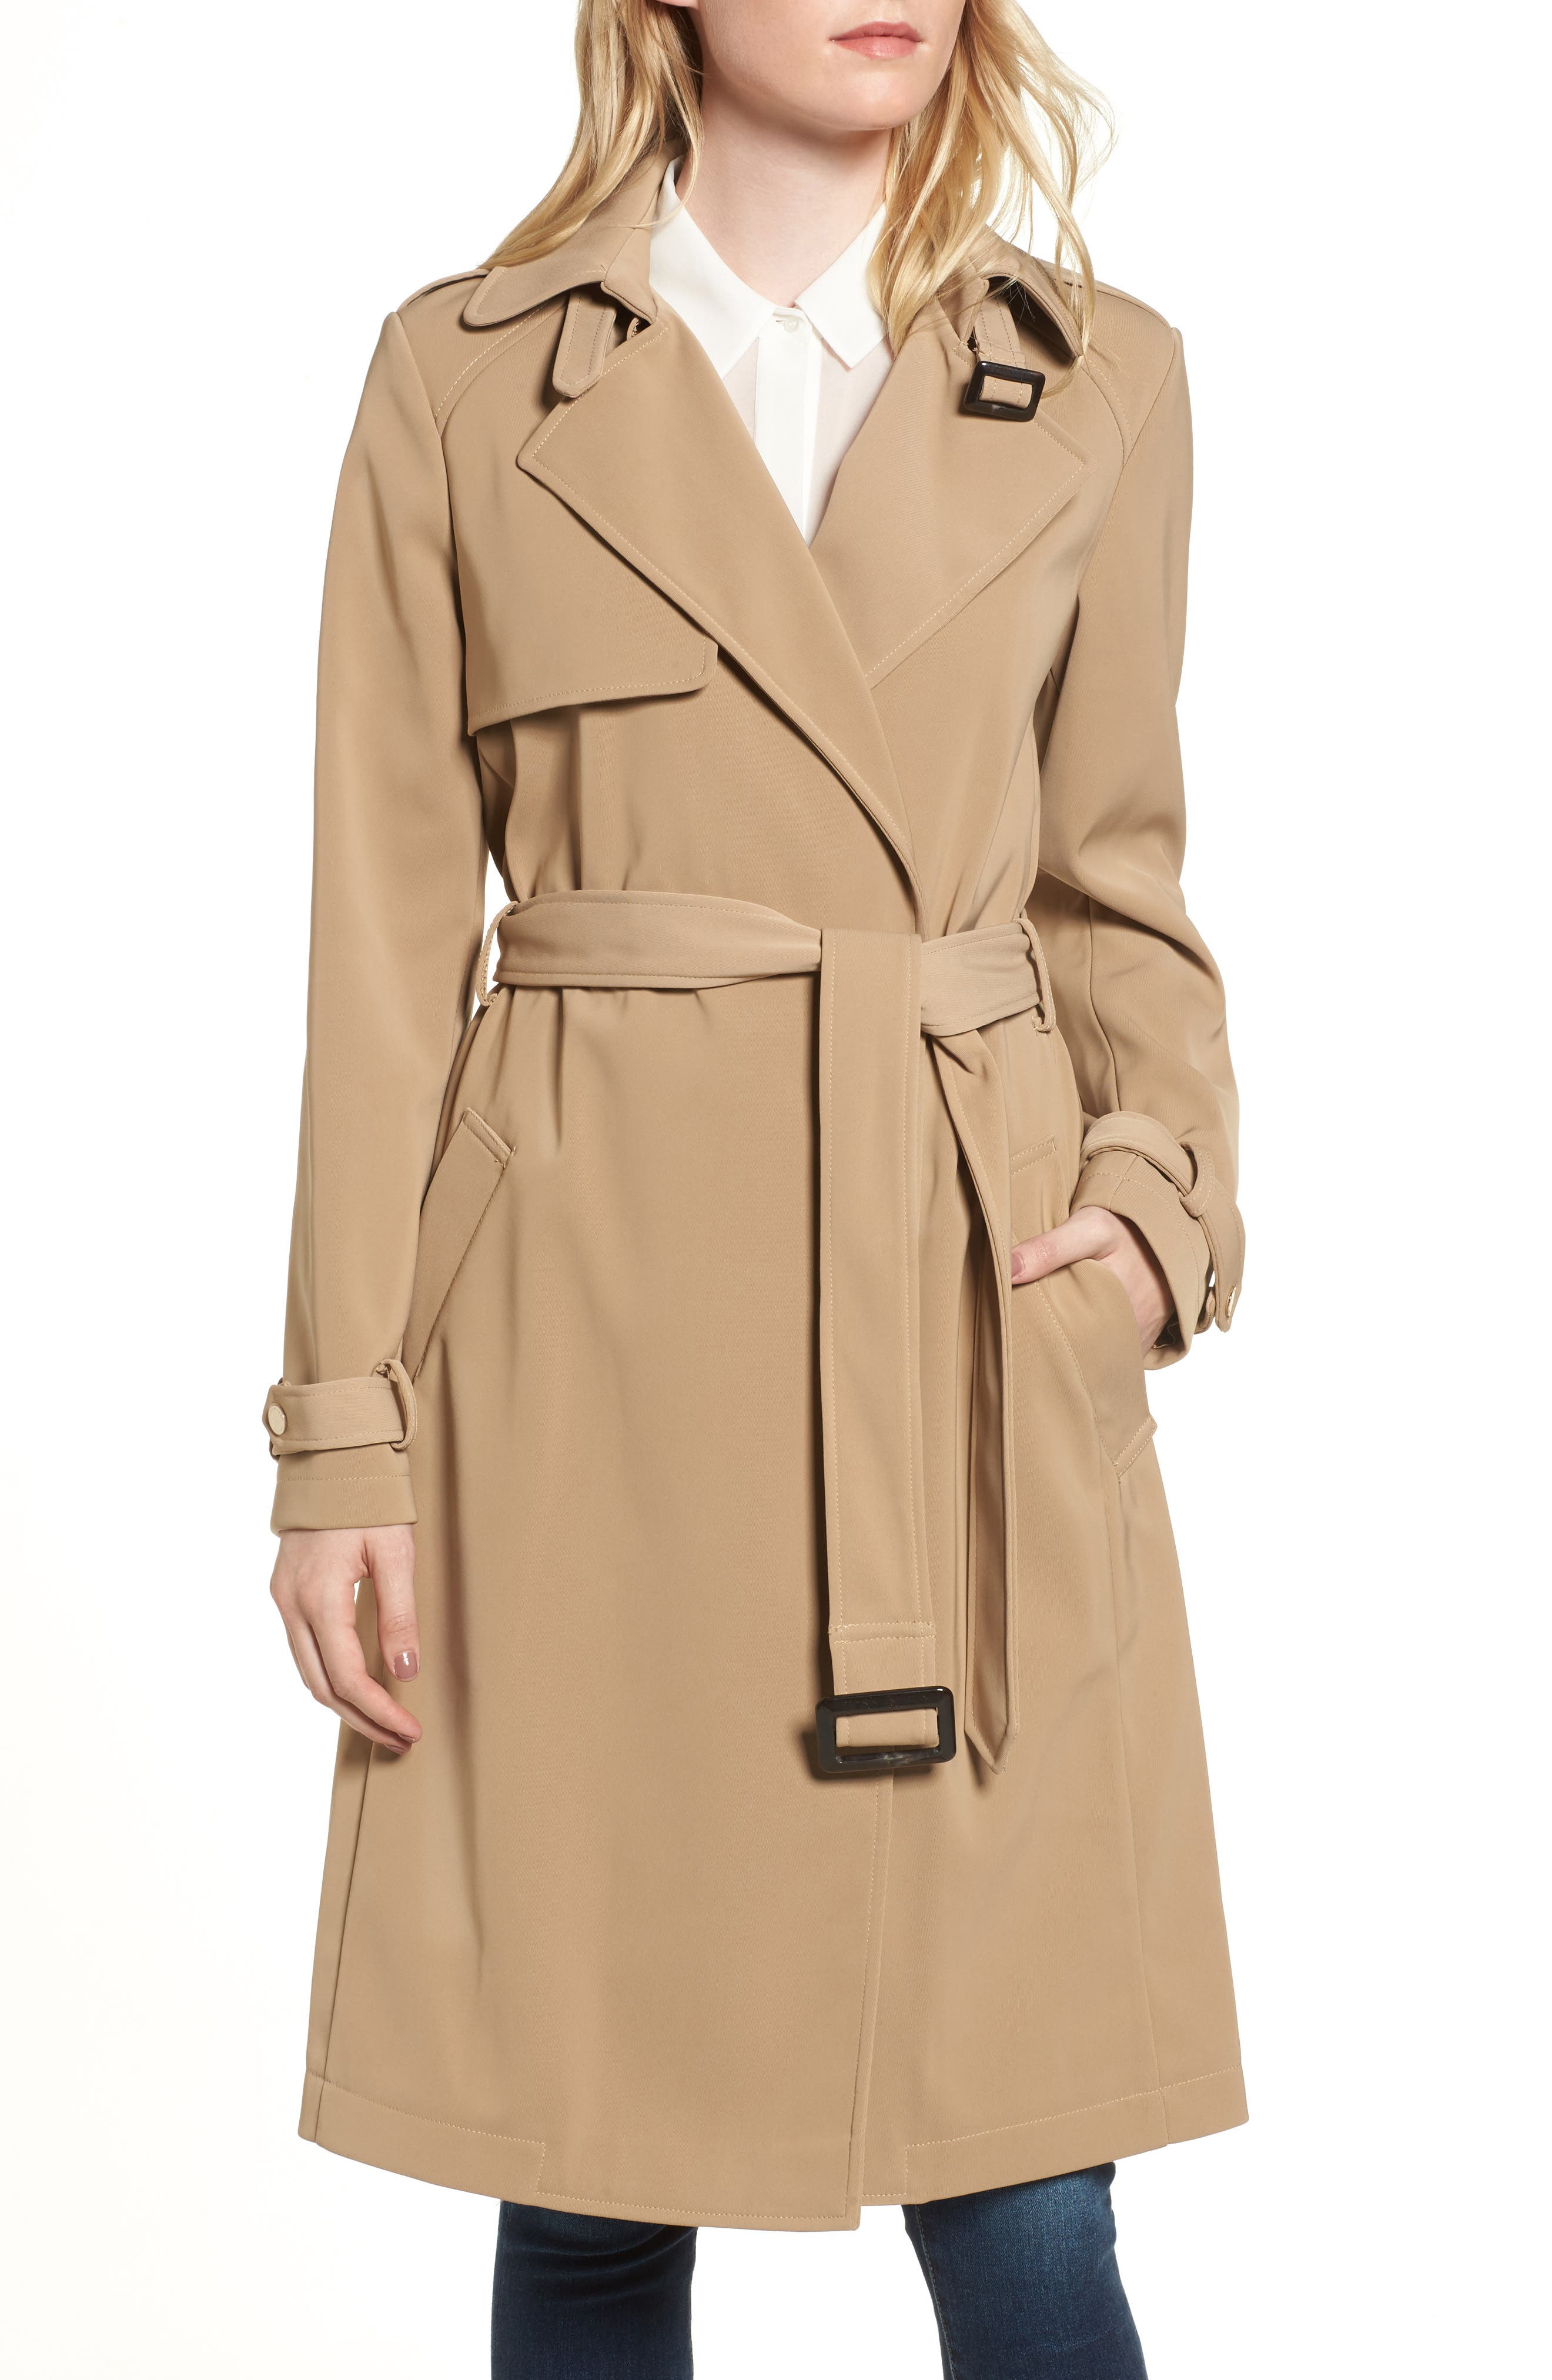 DKNY French Twill Water Resistant Trench Coat,                             Alternate thumbnail 4, color,                             Khaki